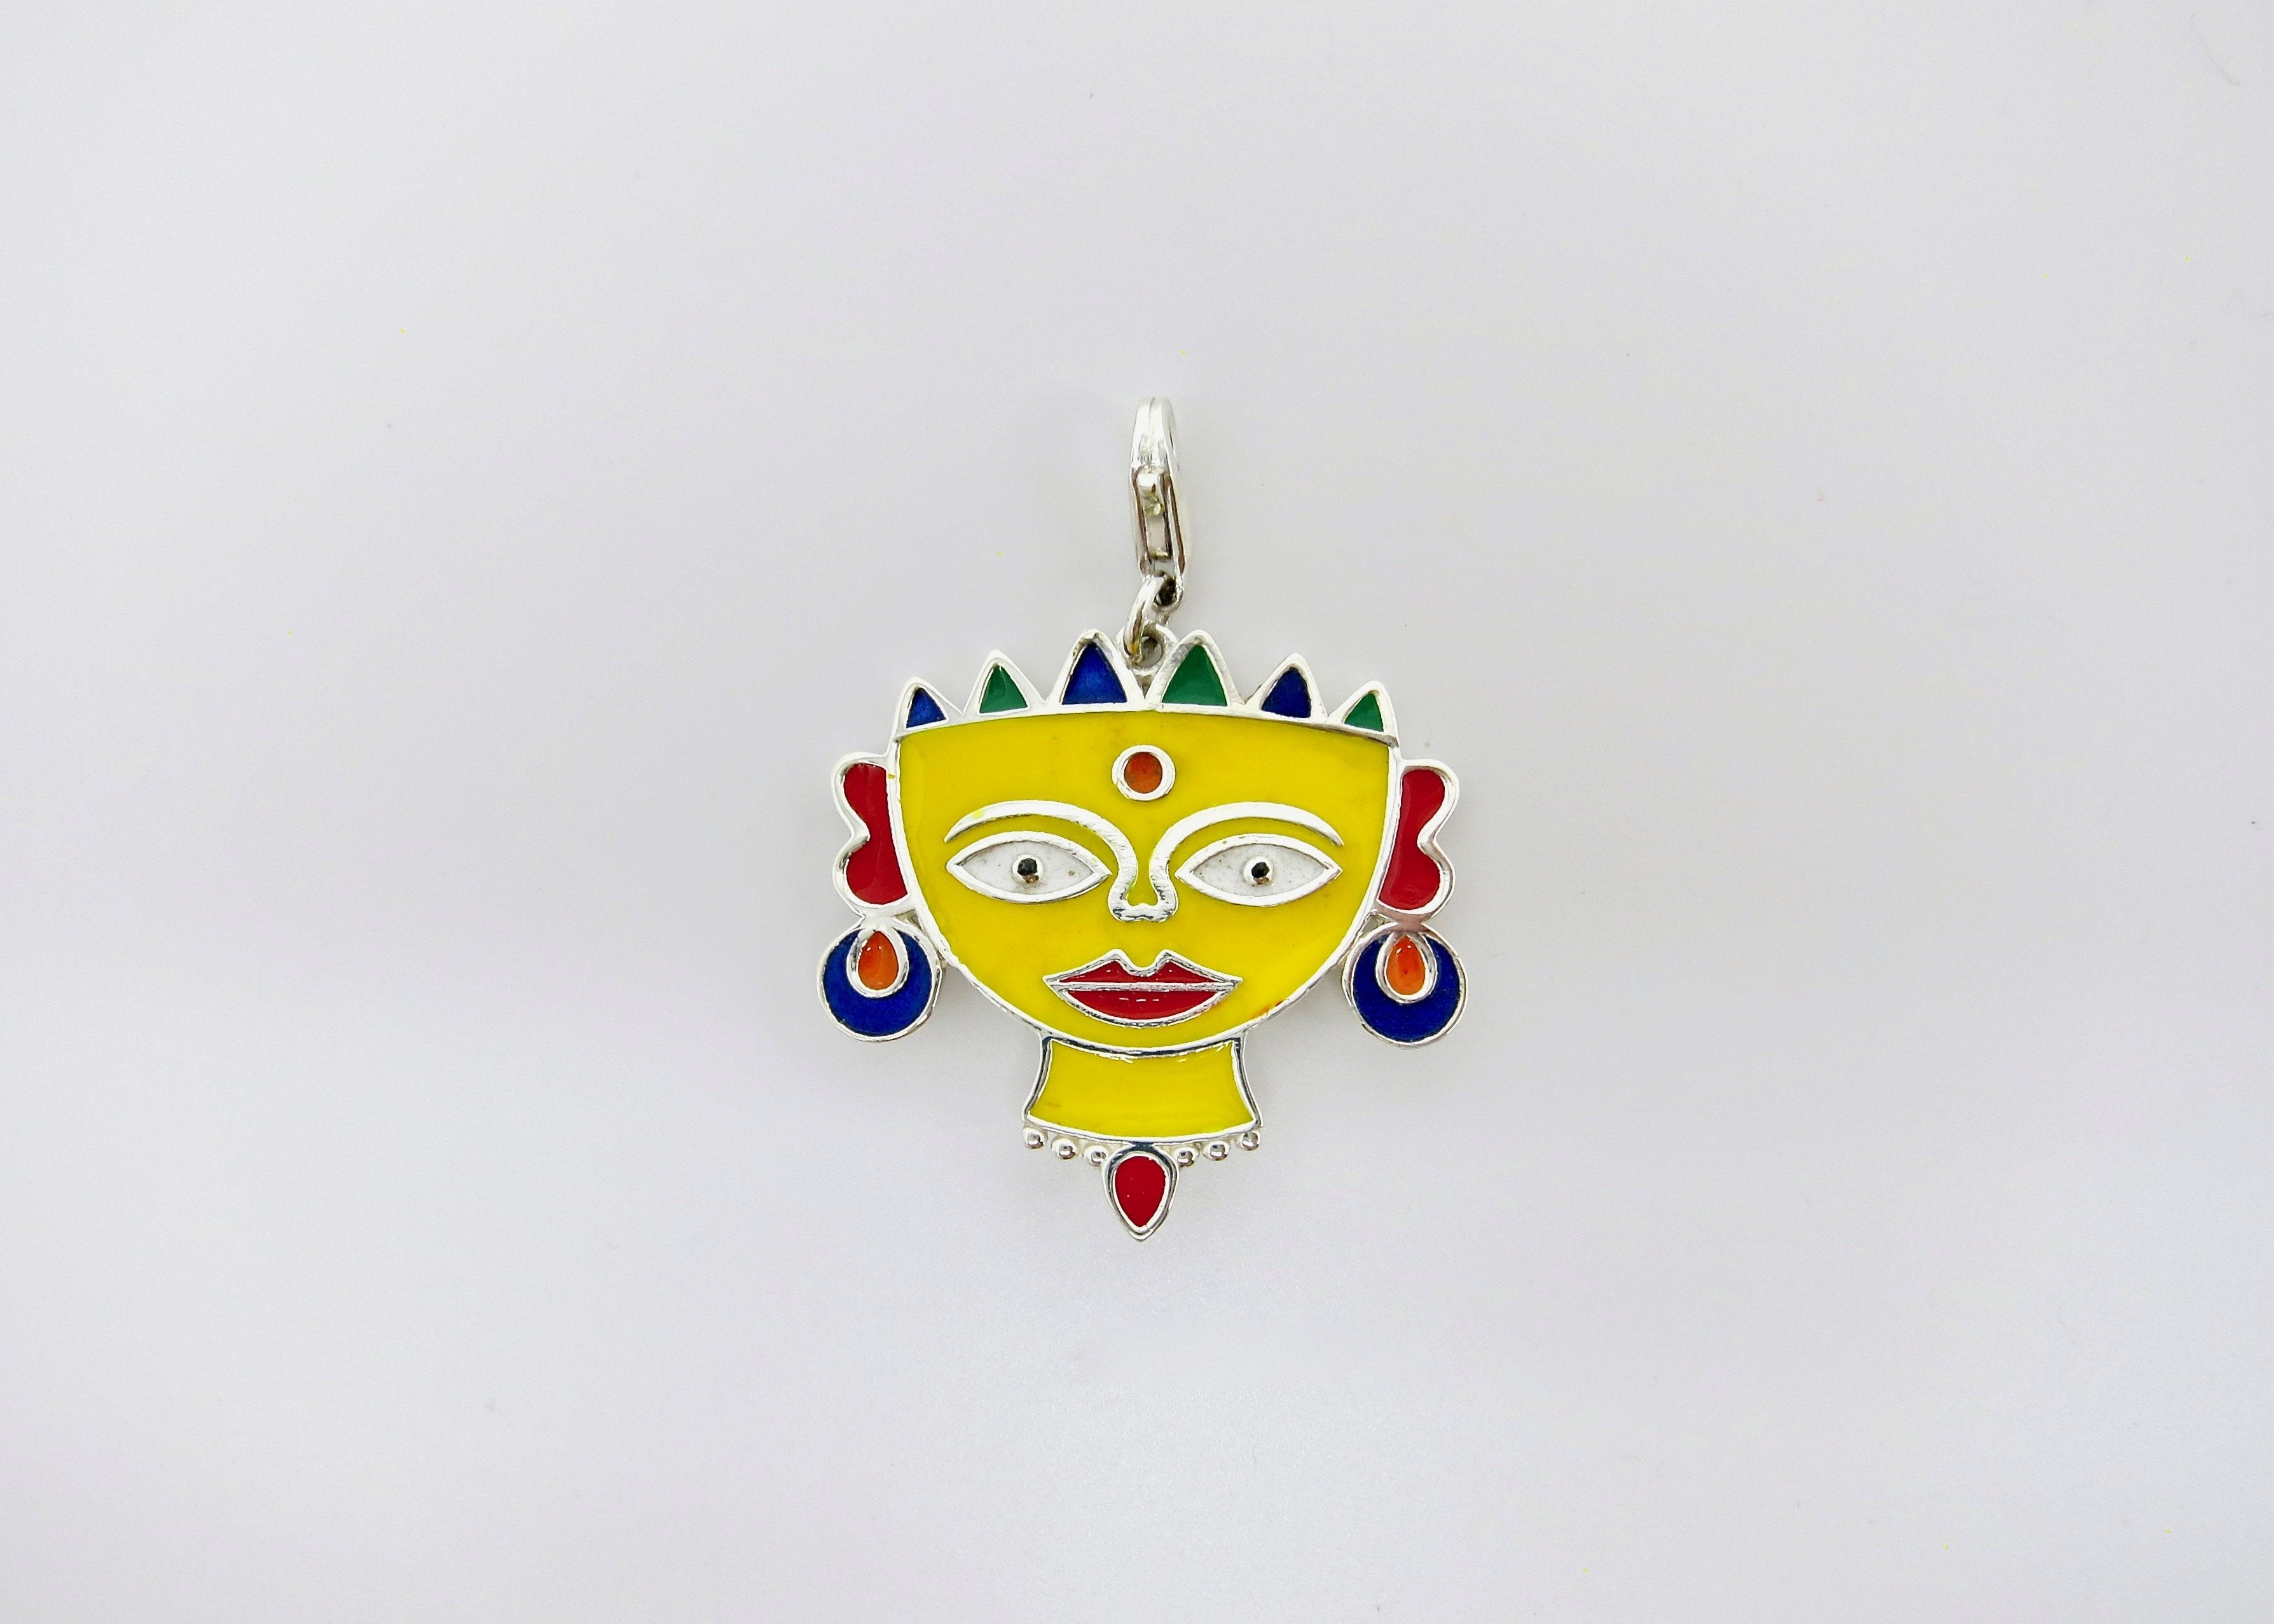 'Indian folk art' charms - Craft Stories Handmade, contemporary, personal and home accessories. Designed in California. Handcrafted in India. Traditional craftsmanship meets modern aesthetics. Sustainable design ethos, fair trade, conscious, artisanal jewelry and home decor. Objects with a story. Unique and on-trend.